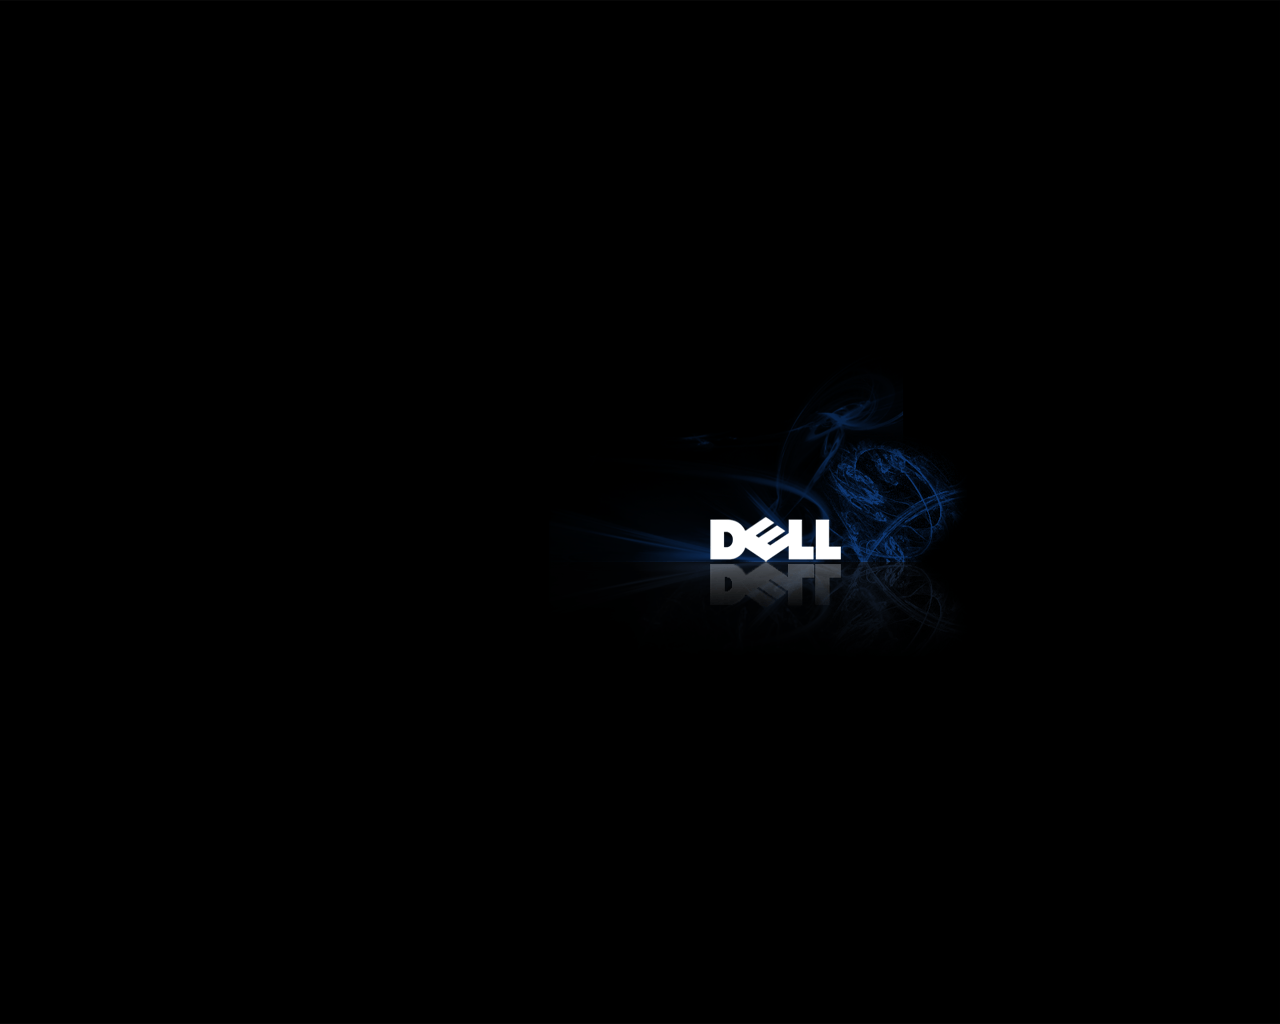 Magnificent Dell Wallpaper Full HD Pictures